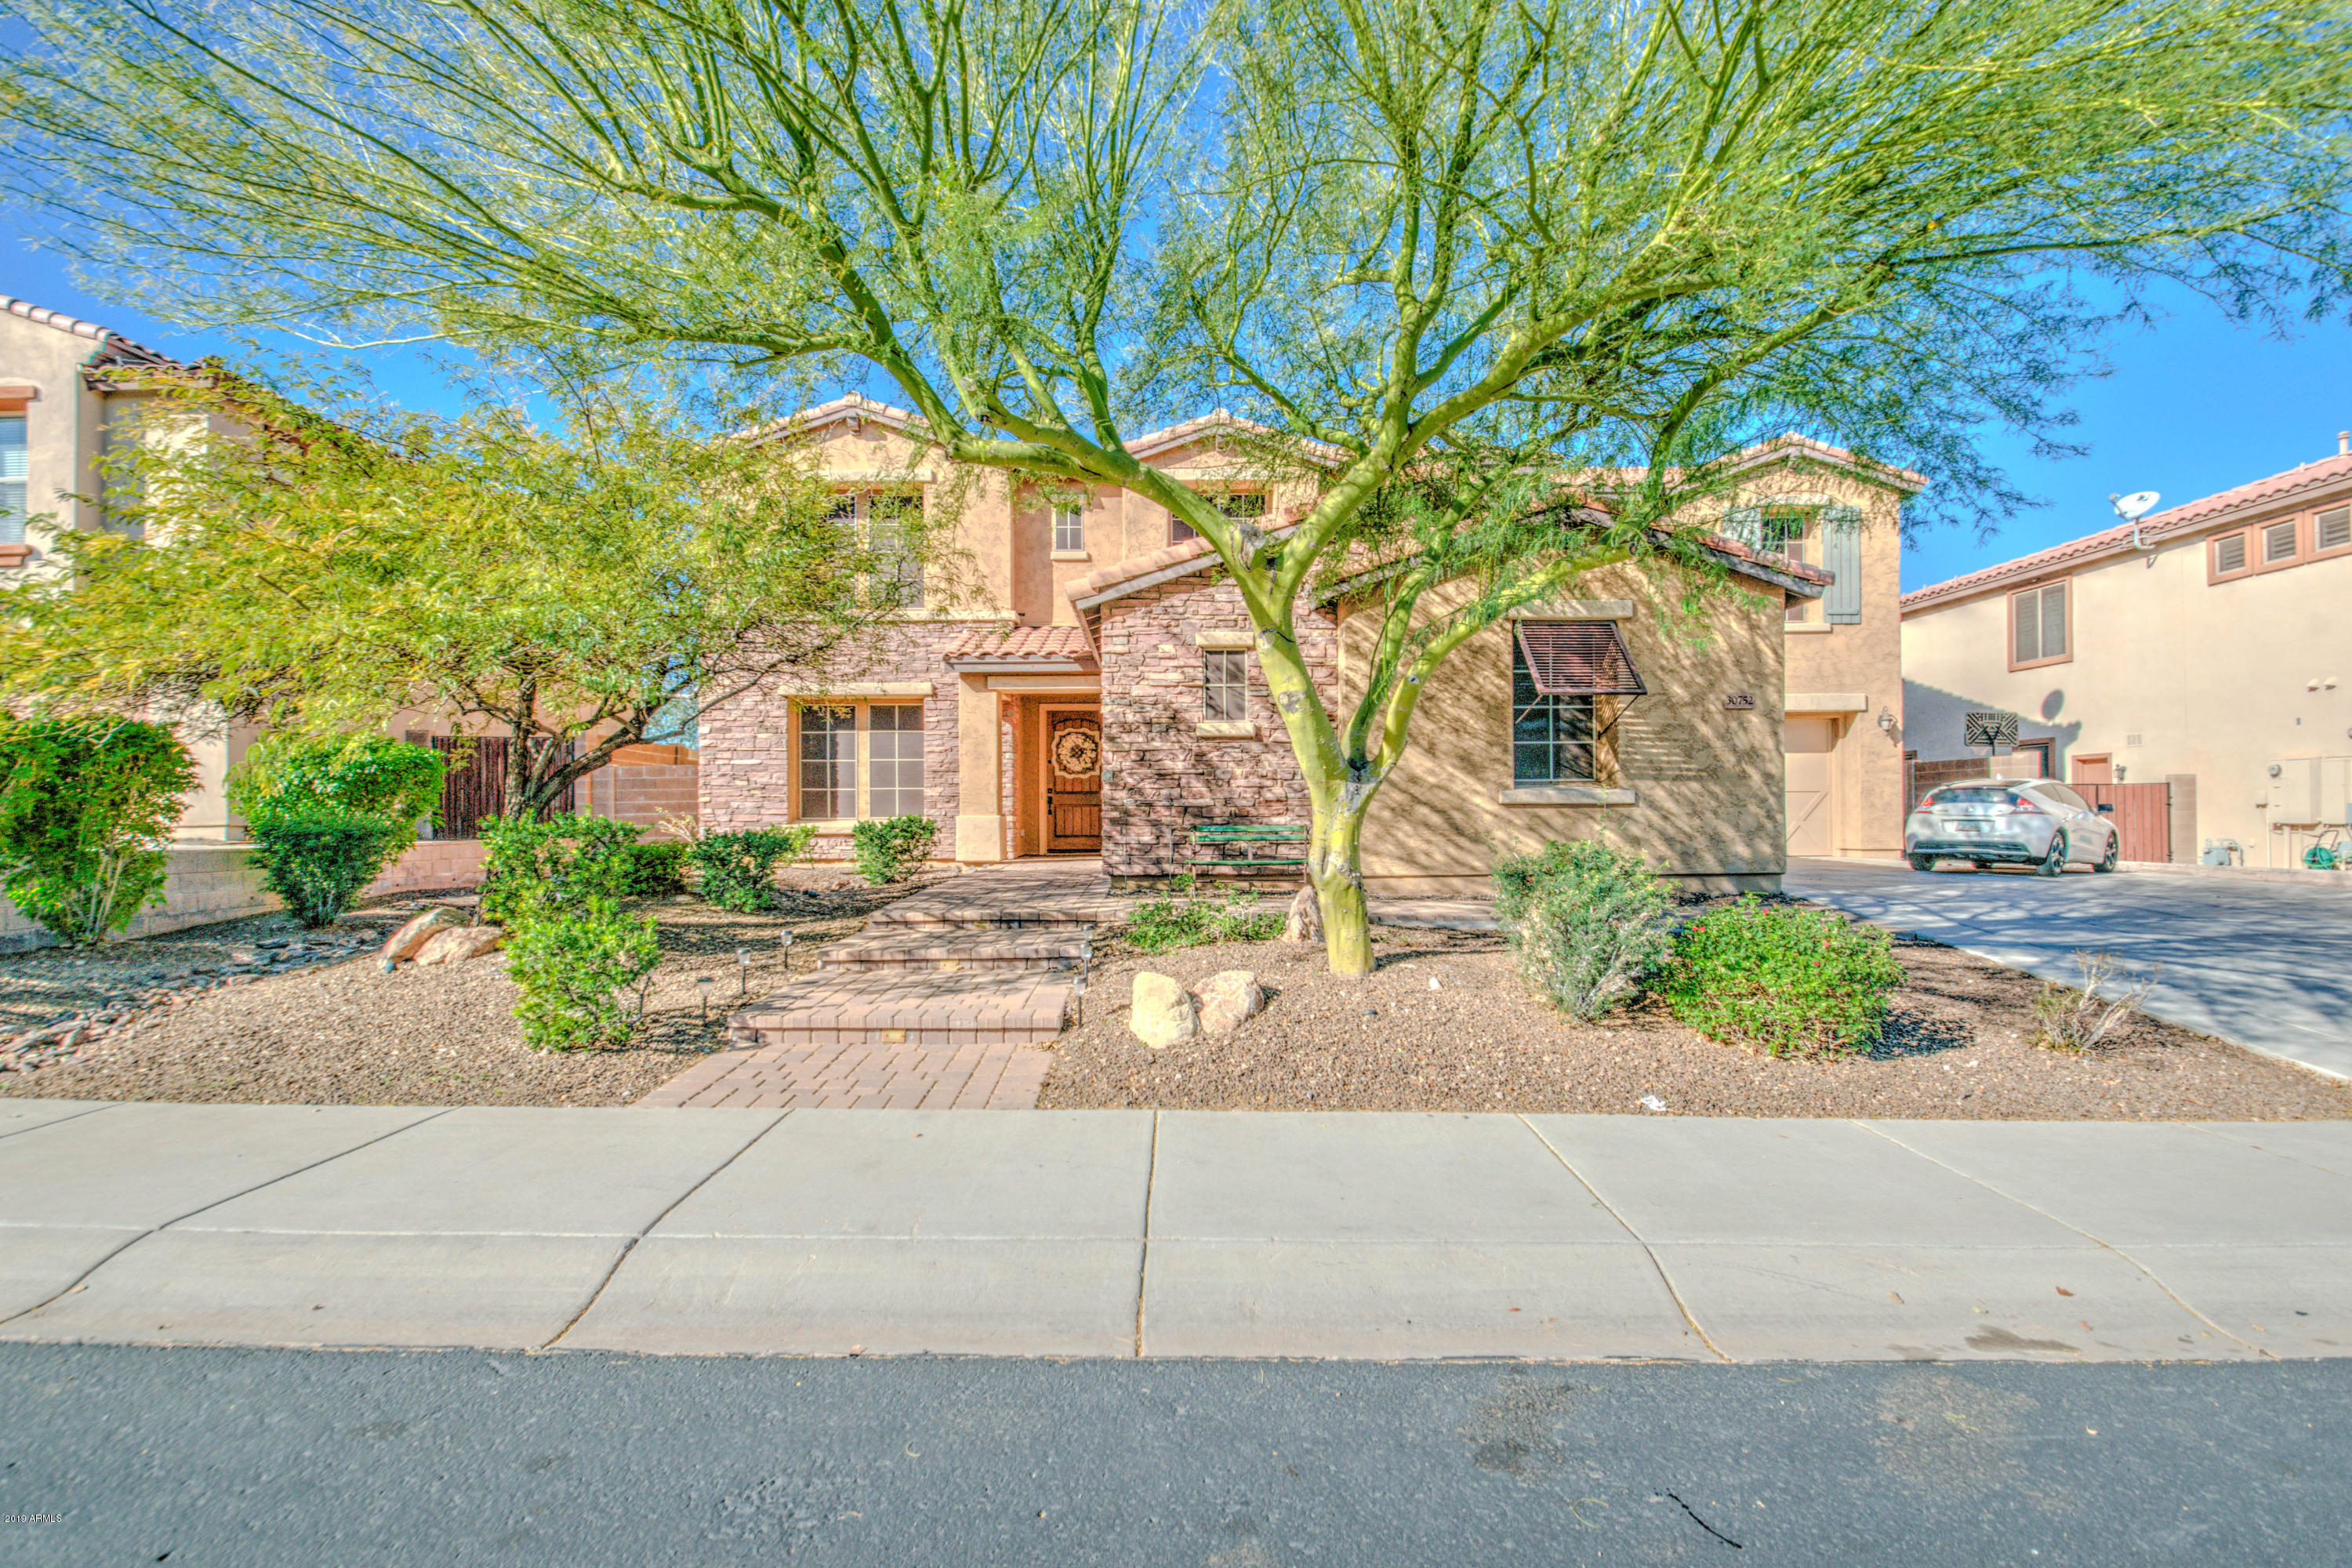 30752 N 130TH Lane, Peoria, Arizona